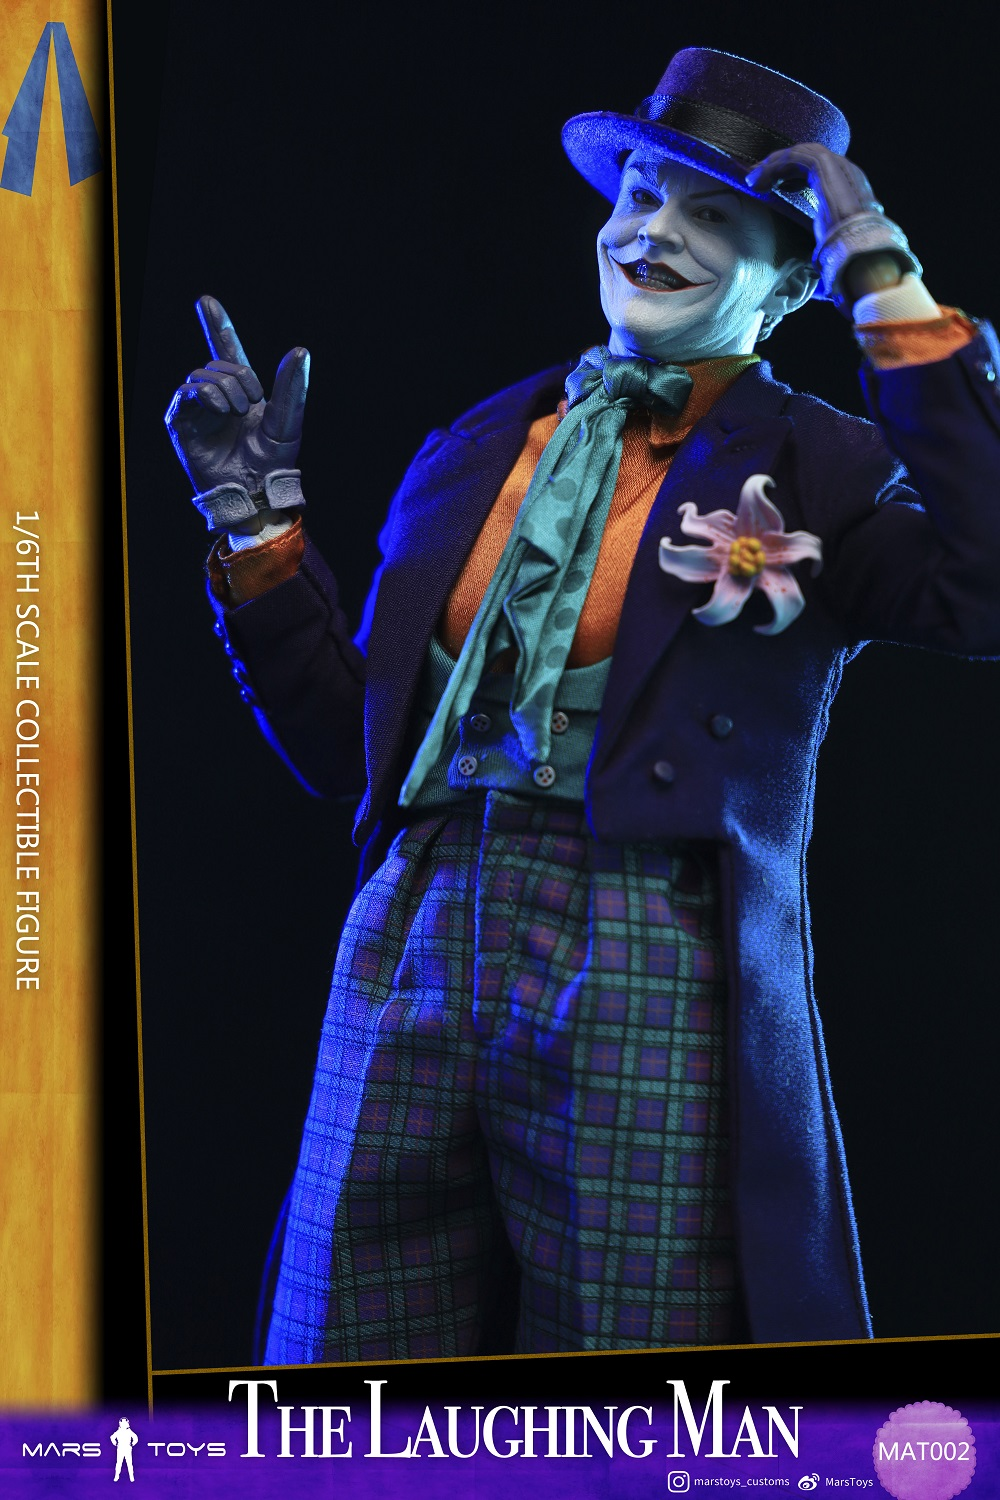 BATMAN 1989 JOKER THE LAUGHING MAN JACK NICHOLSON 1/6 SCALE FIGURE 3